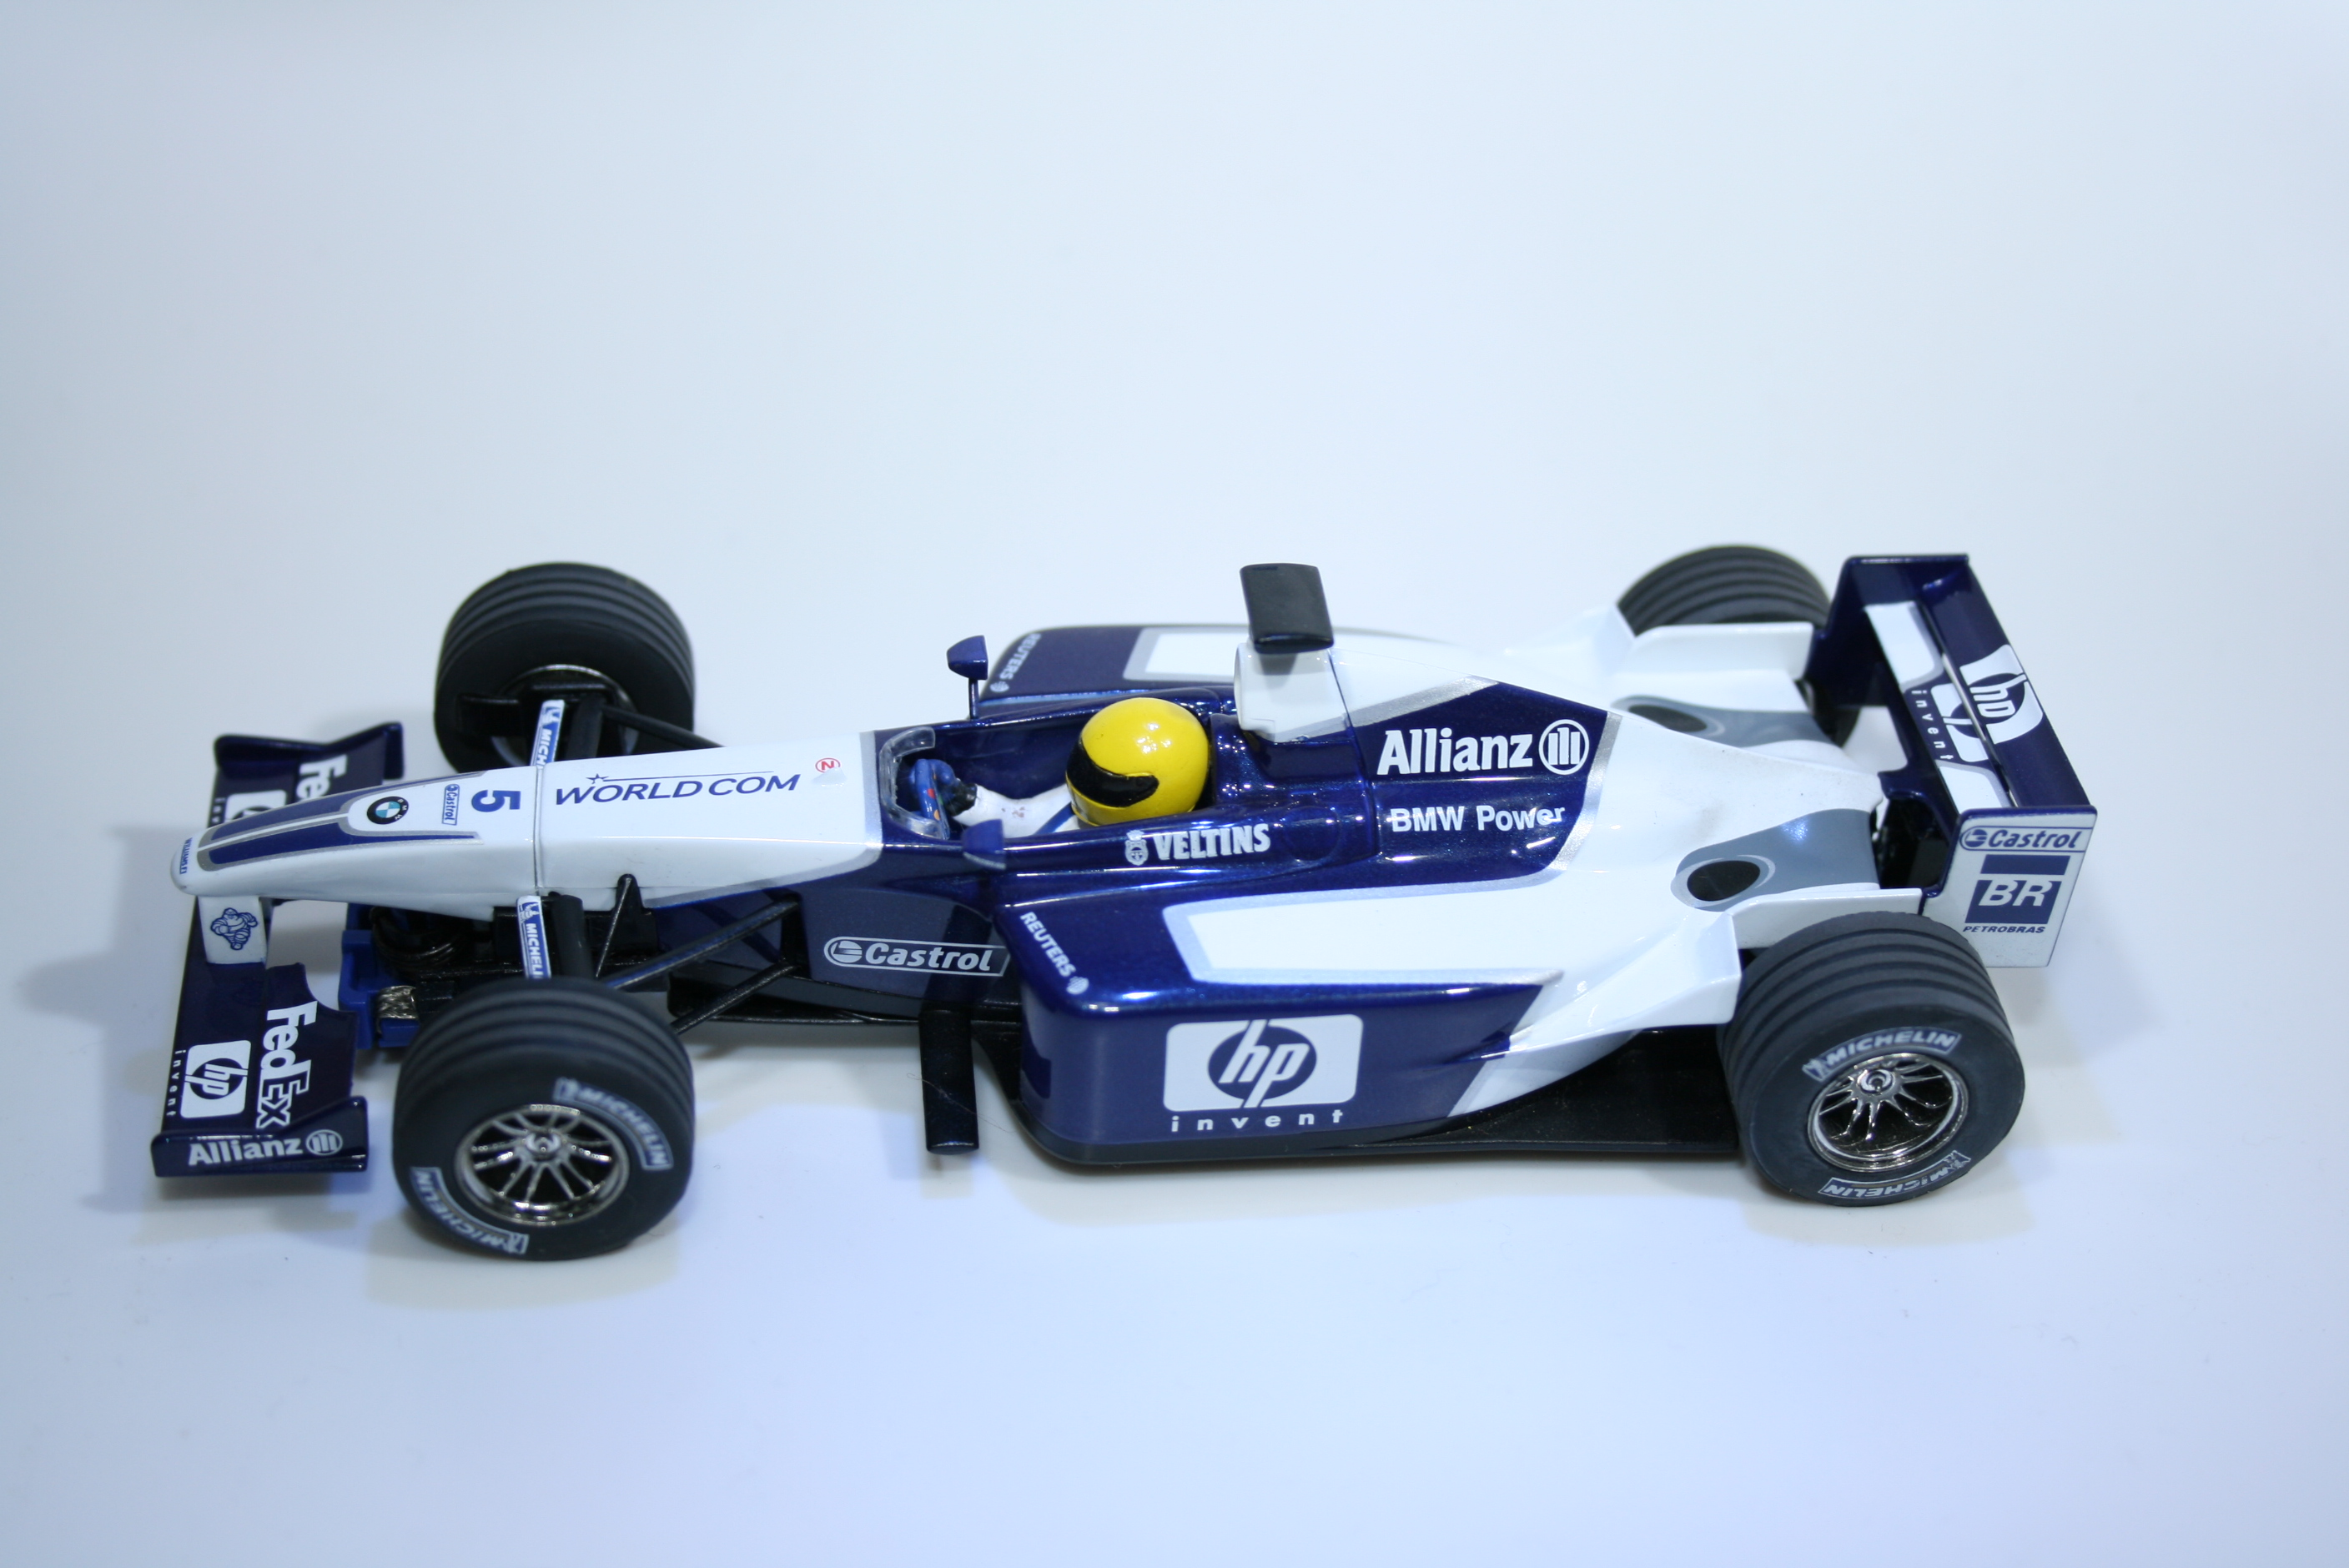 142 Williams FW25 2003 R Schumacher Scalextric C2418 2003 Boxed